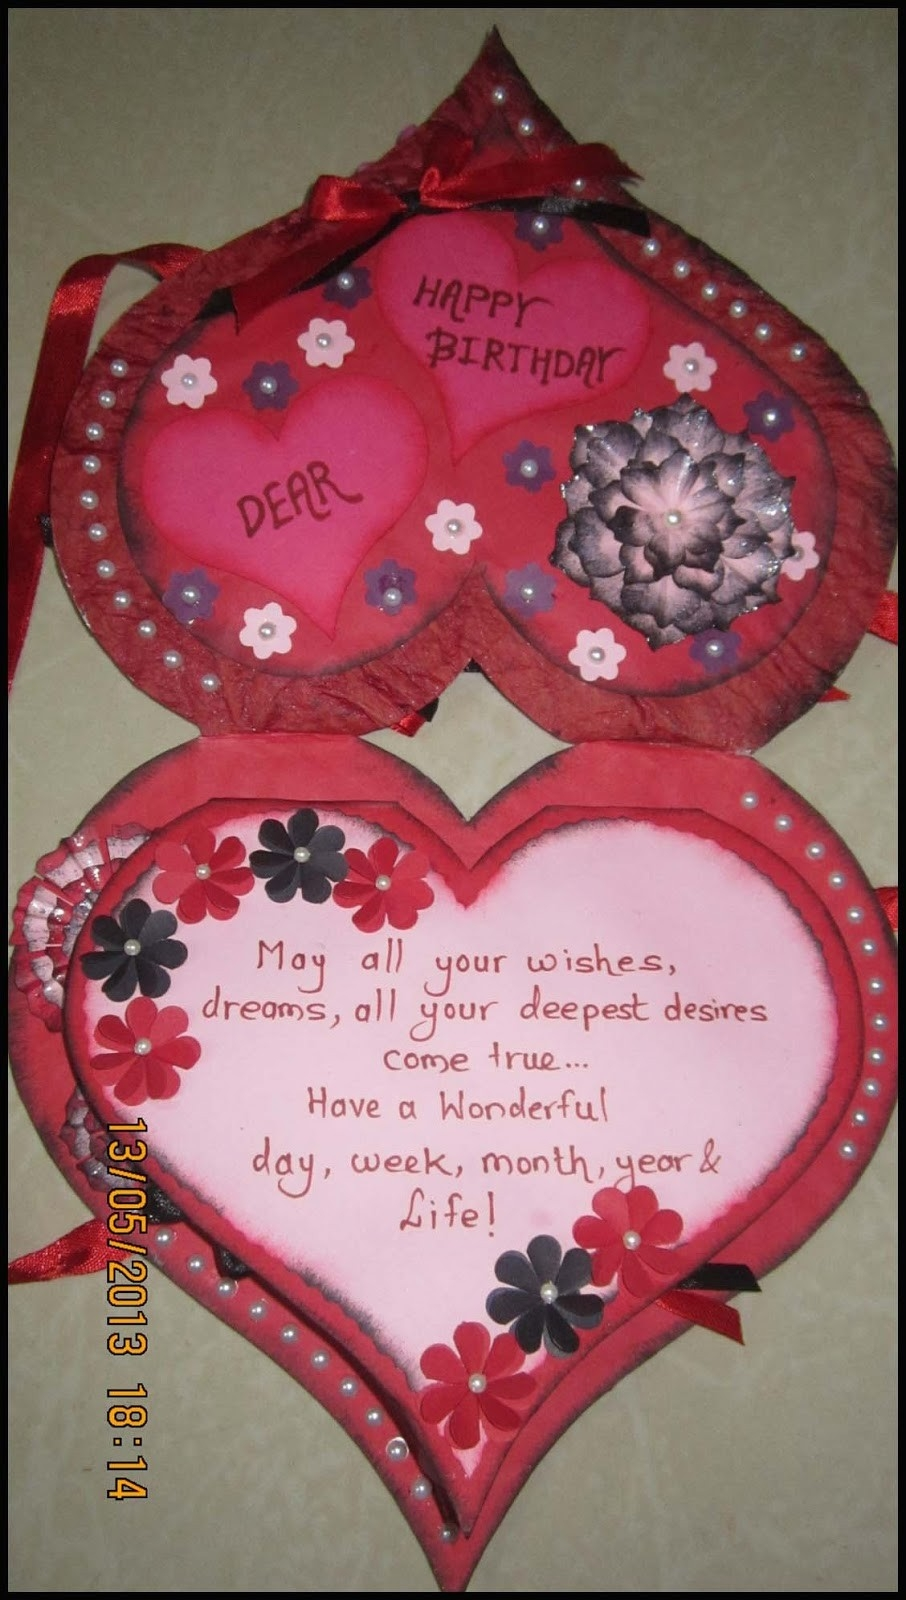 Creative Handmade Love Cards For Him - Valentine's Day Pictures throughout I Love U Cards For Boyfriend Handmade 30117